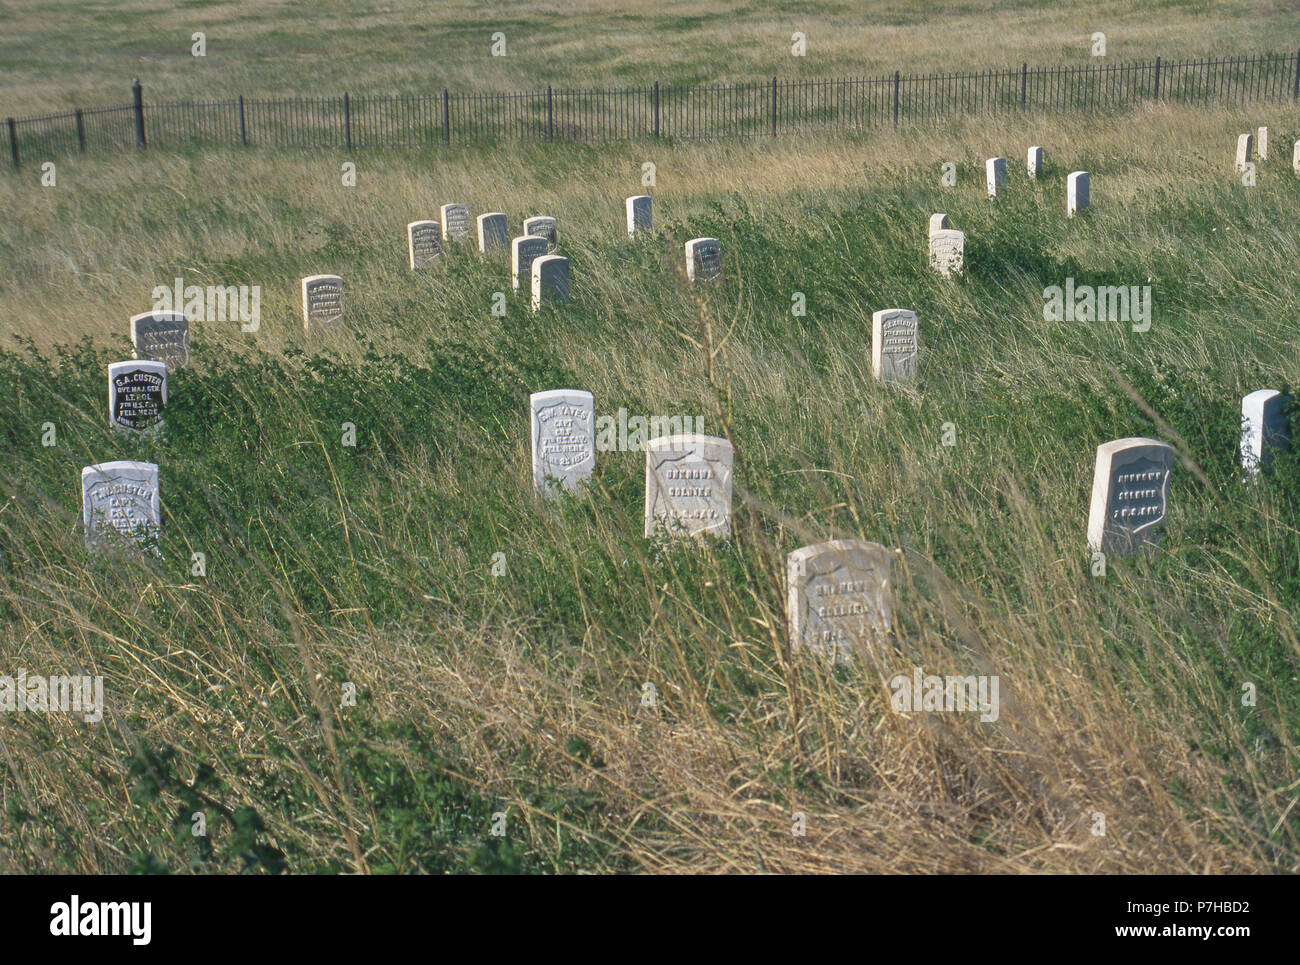 Custer Hill markers where 7th Cavalry soldiers' bodies were found, Little Bighorn Battlefield, Montana. Photograph Stock Photo